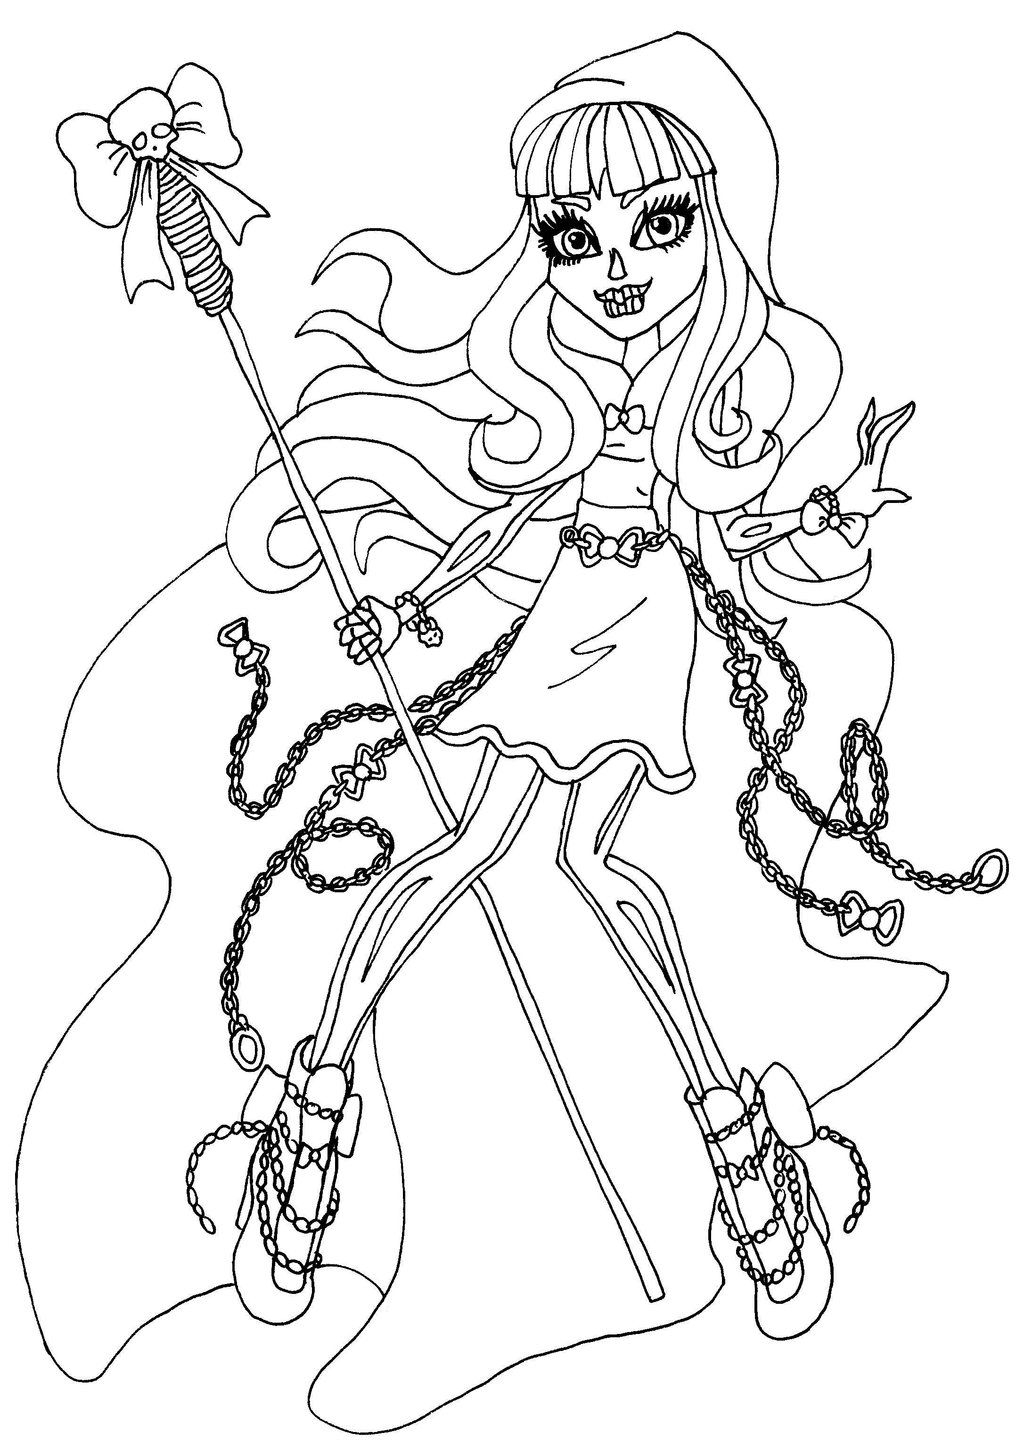 Monster High Coloring Pages that You Can Print Collection 15f - To print for your project